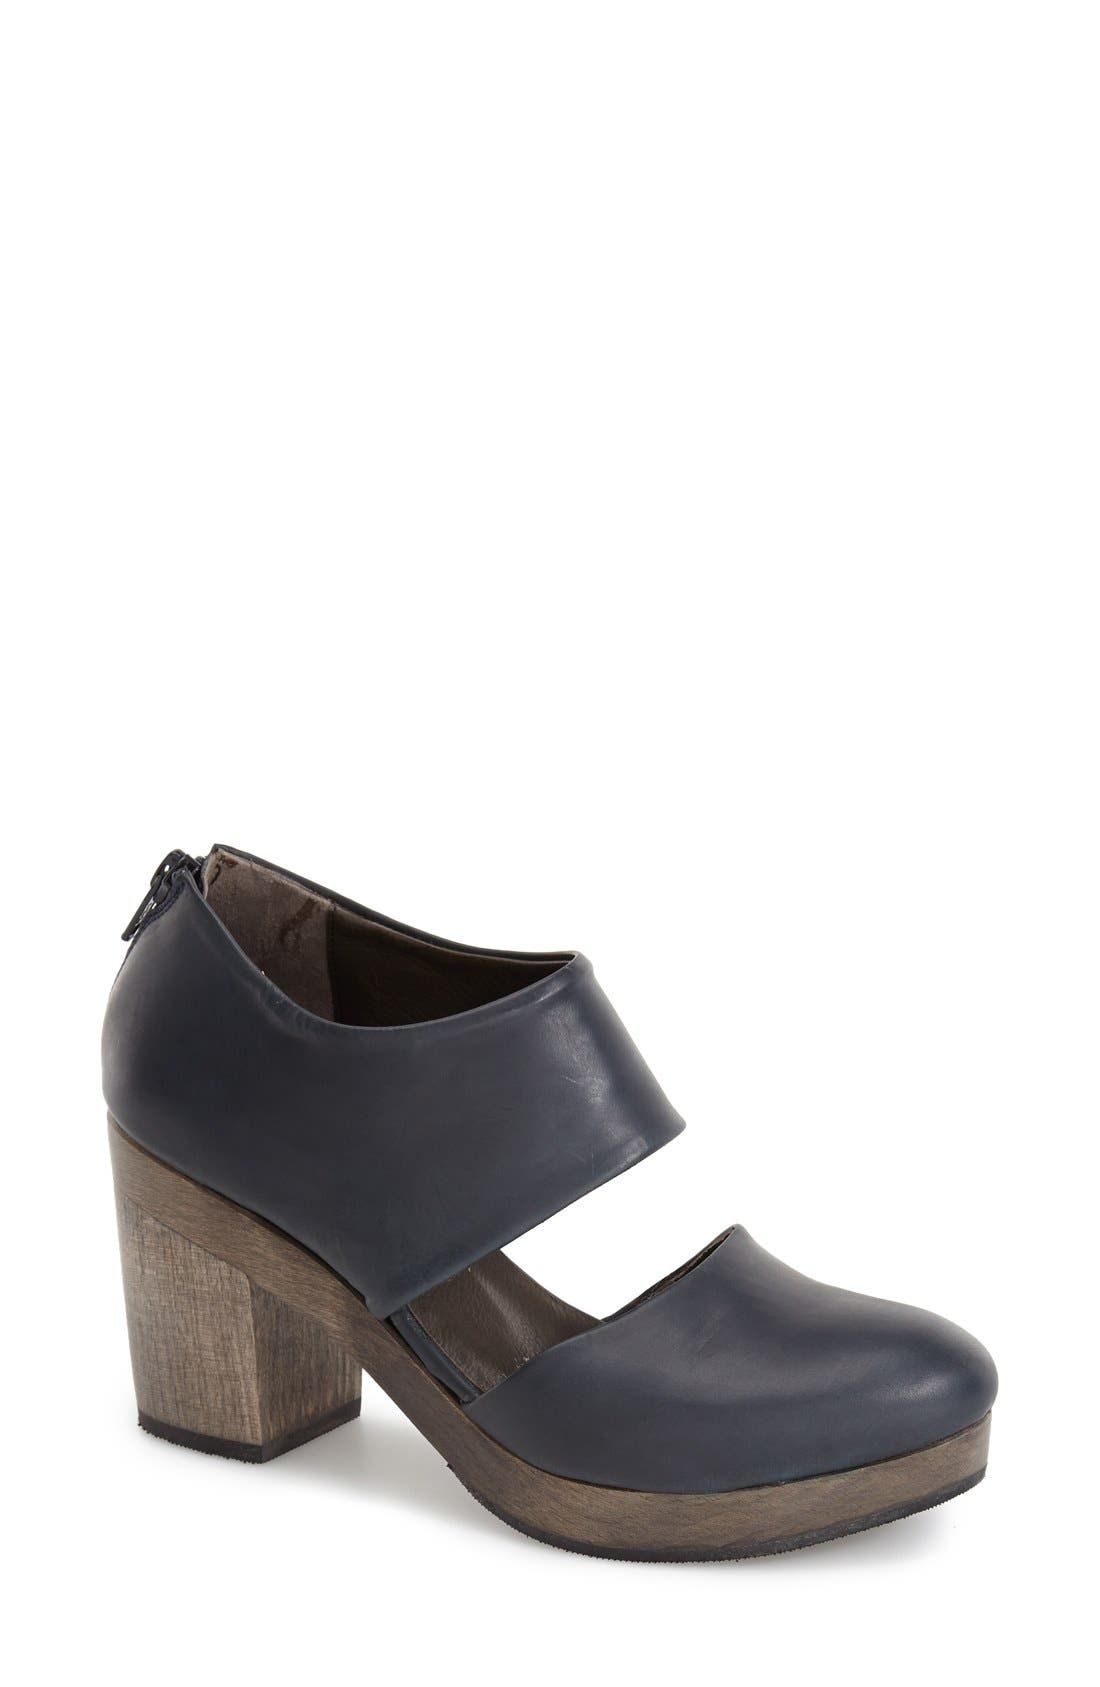 Alternate Image 1 Selected - Coclico 'Sombre' Platform Clog (Women)